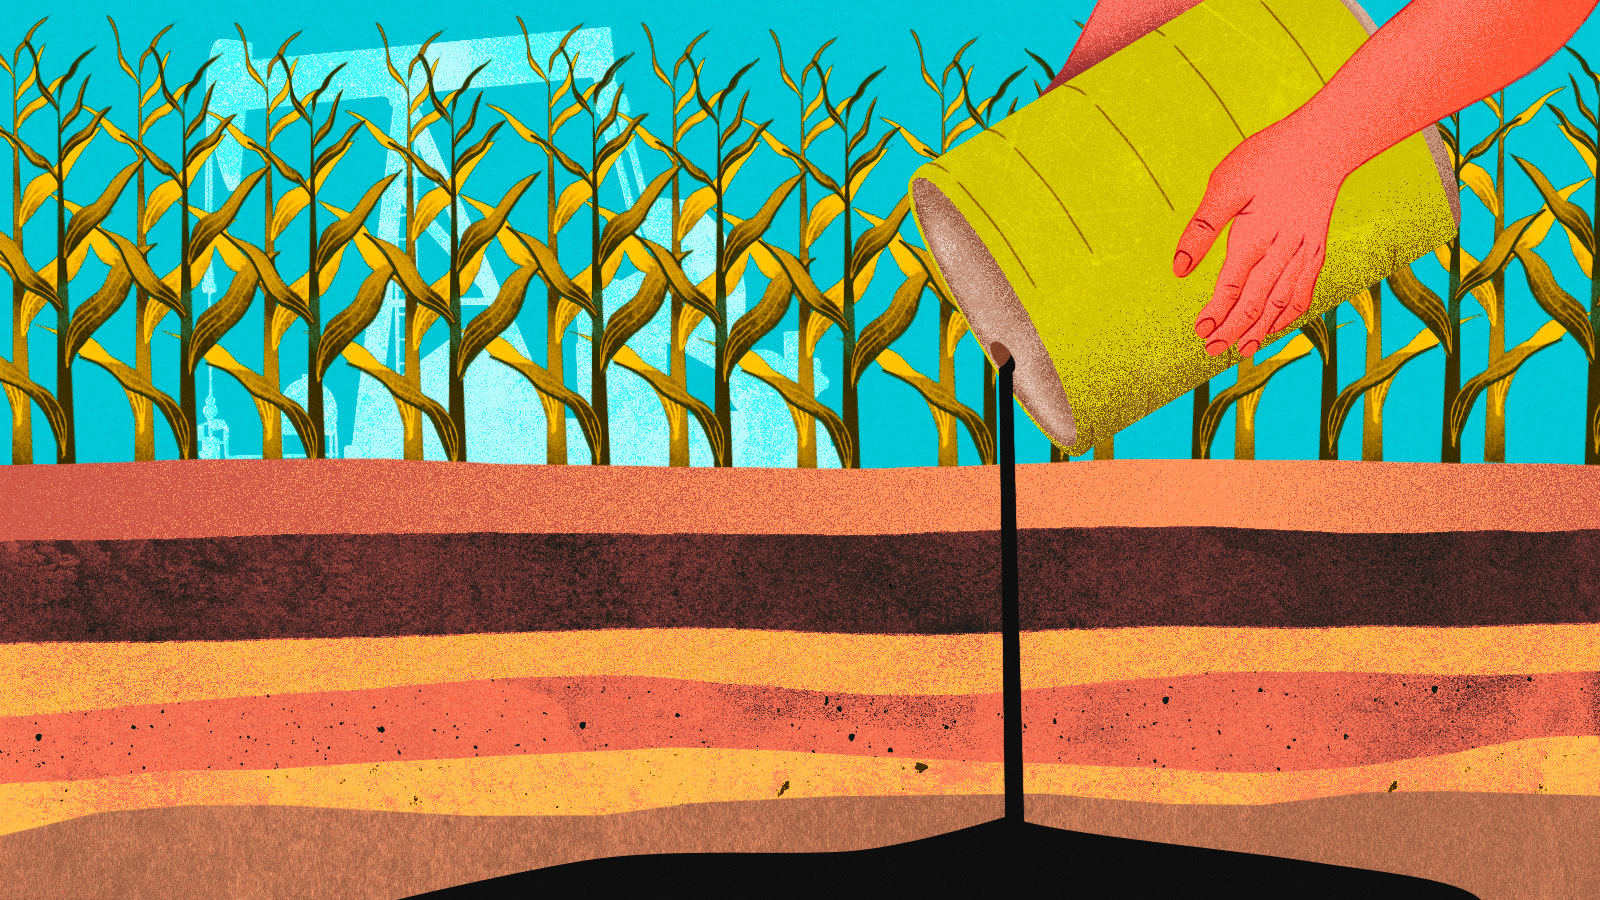 A person is pouring a barrel of oil into layers of soil, representing the carbon removal work of Charm.